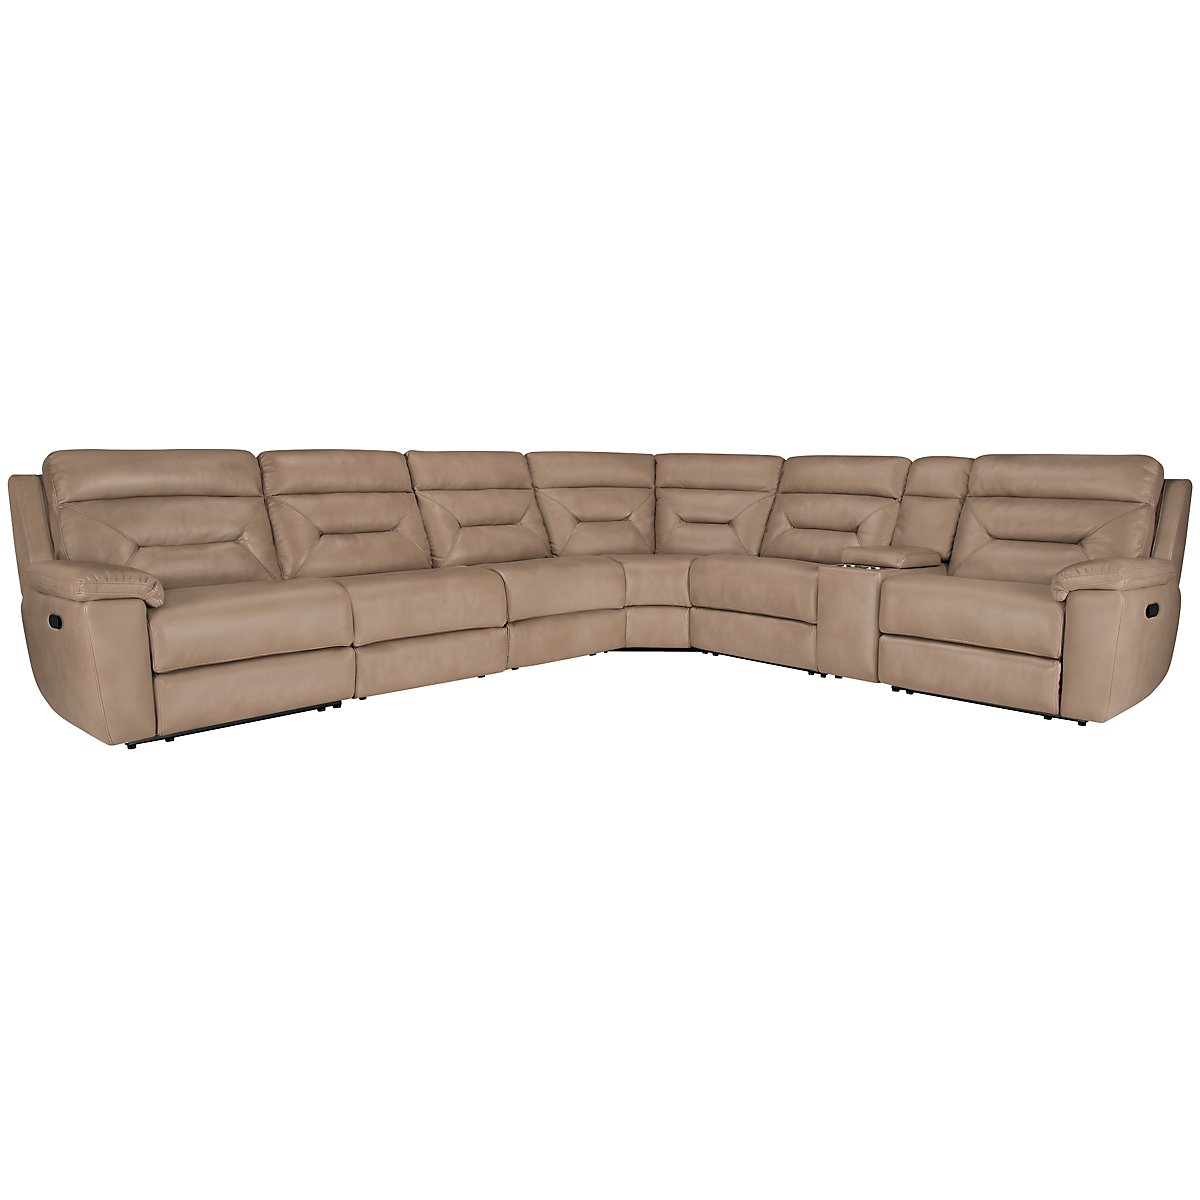 Phoenix Dk Beige Microfiber Large Two-Arm Manually Reclining Sectional